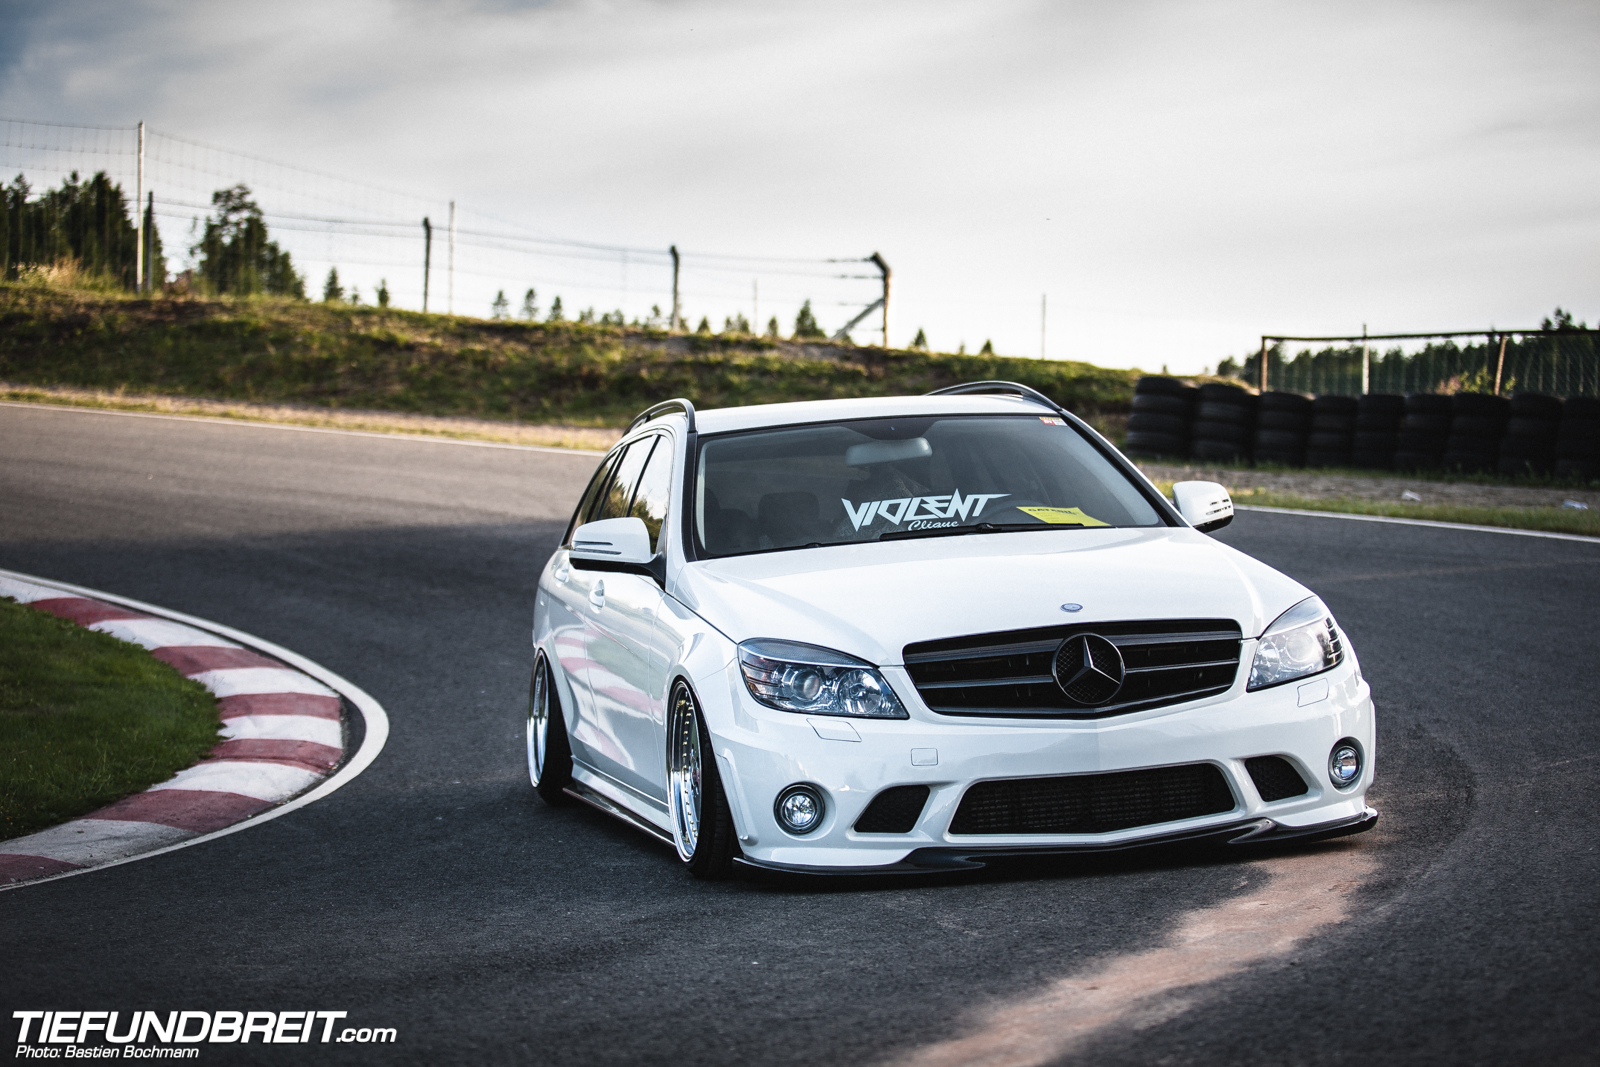 Class Act Bagged W204 Wagon From Sweden